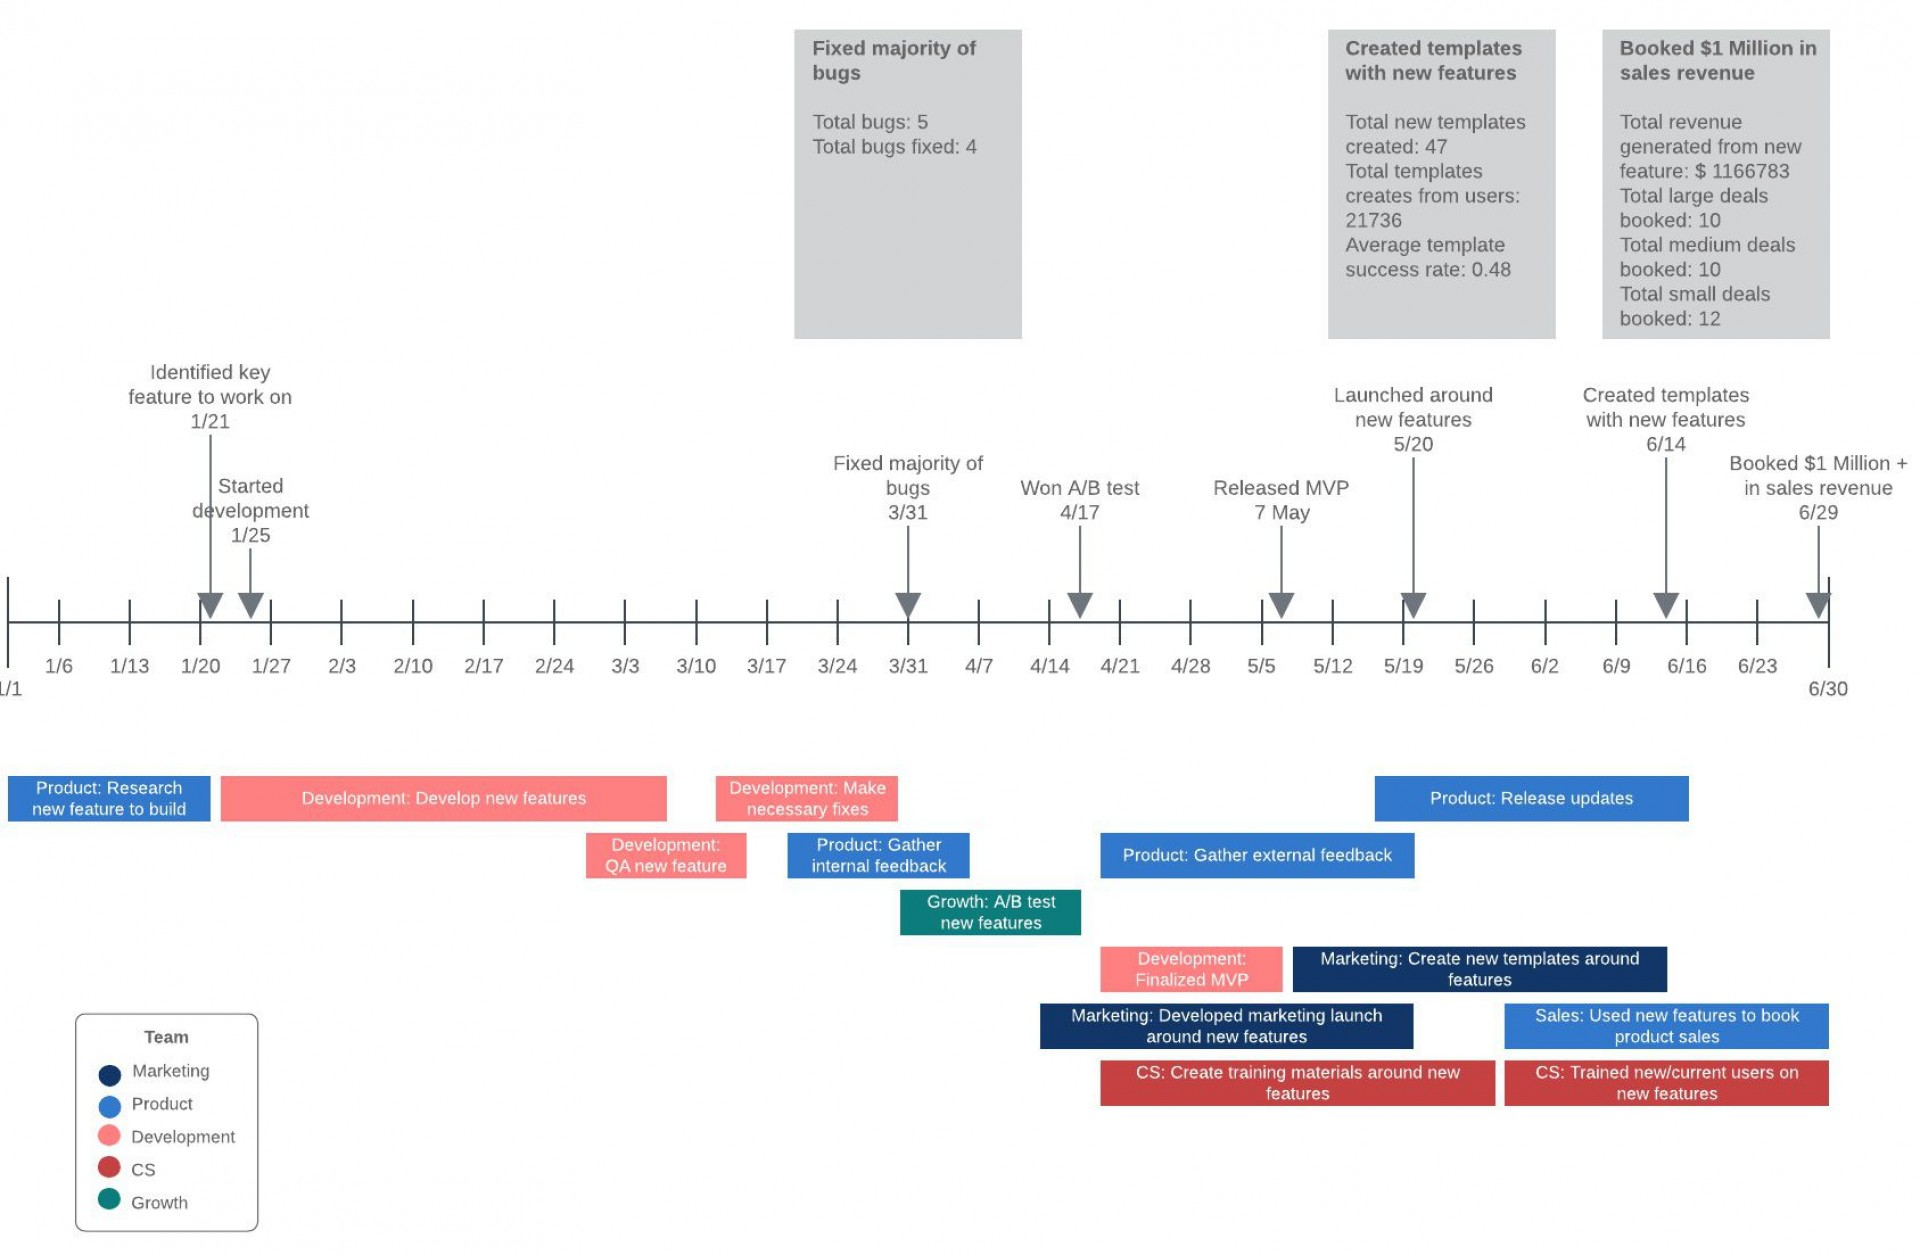 008 Exceptional Project Management Timeline Template Image  Plan Pmbok Planner1920